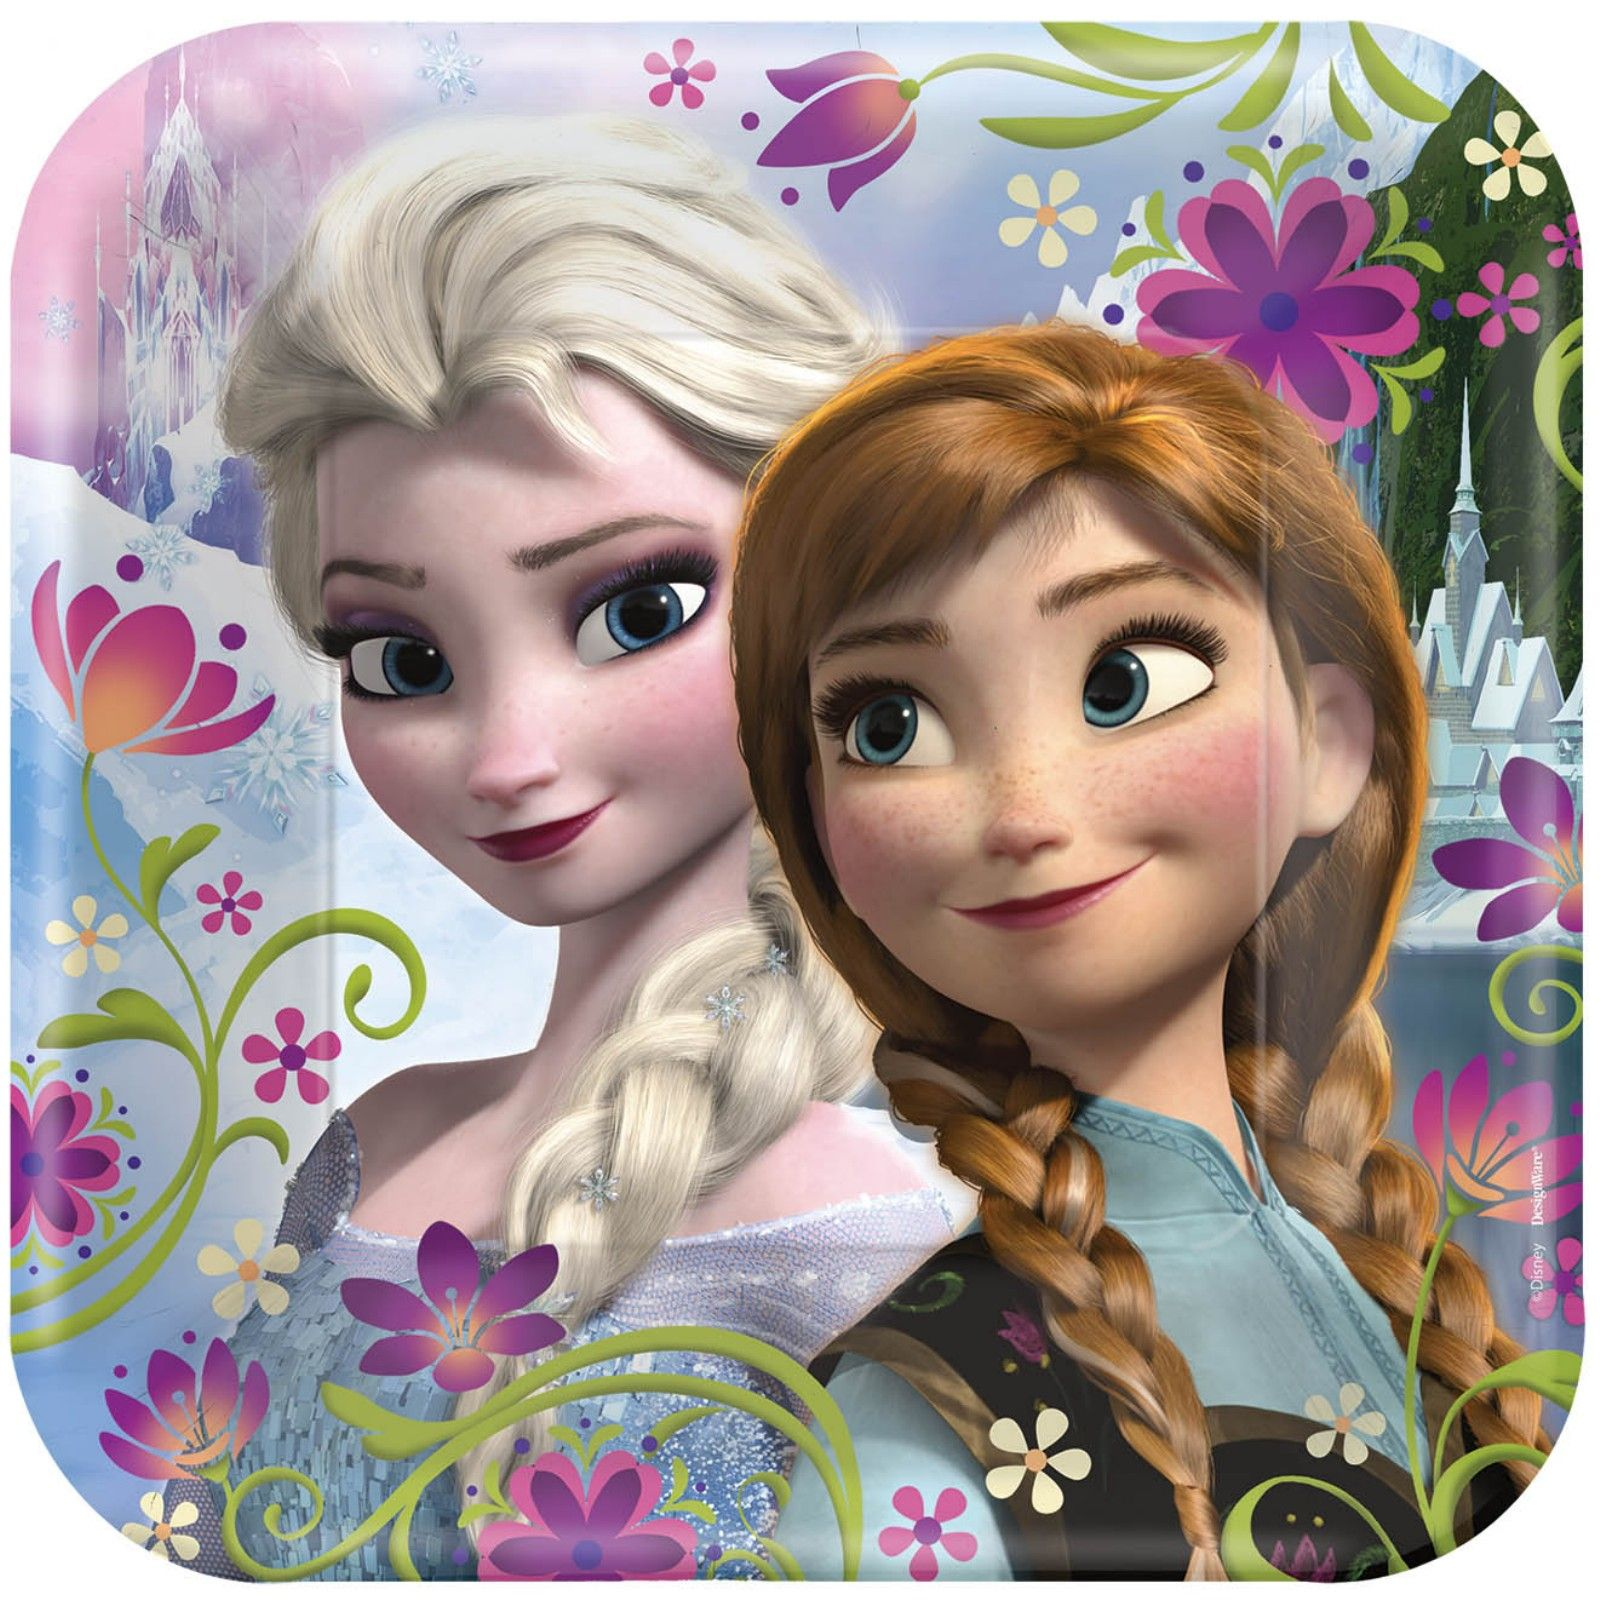 Cool Party Supplies Disney Frozen Square Dinner Plates just added.  sc 1 st  Pinterest & Party Supplies Disney Frozen Square Dinner Plates | Disney frozen ...